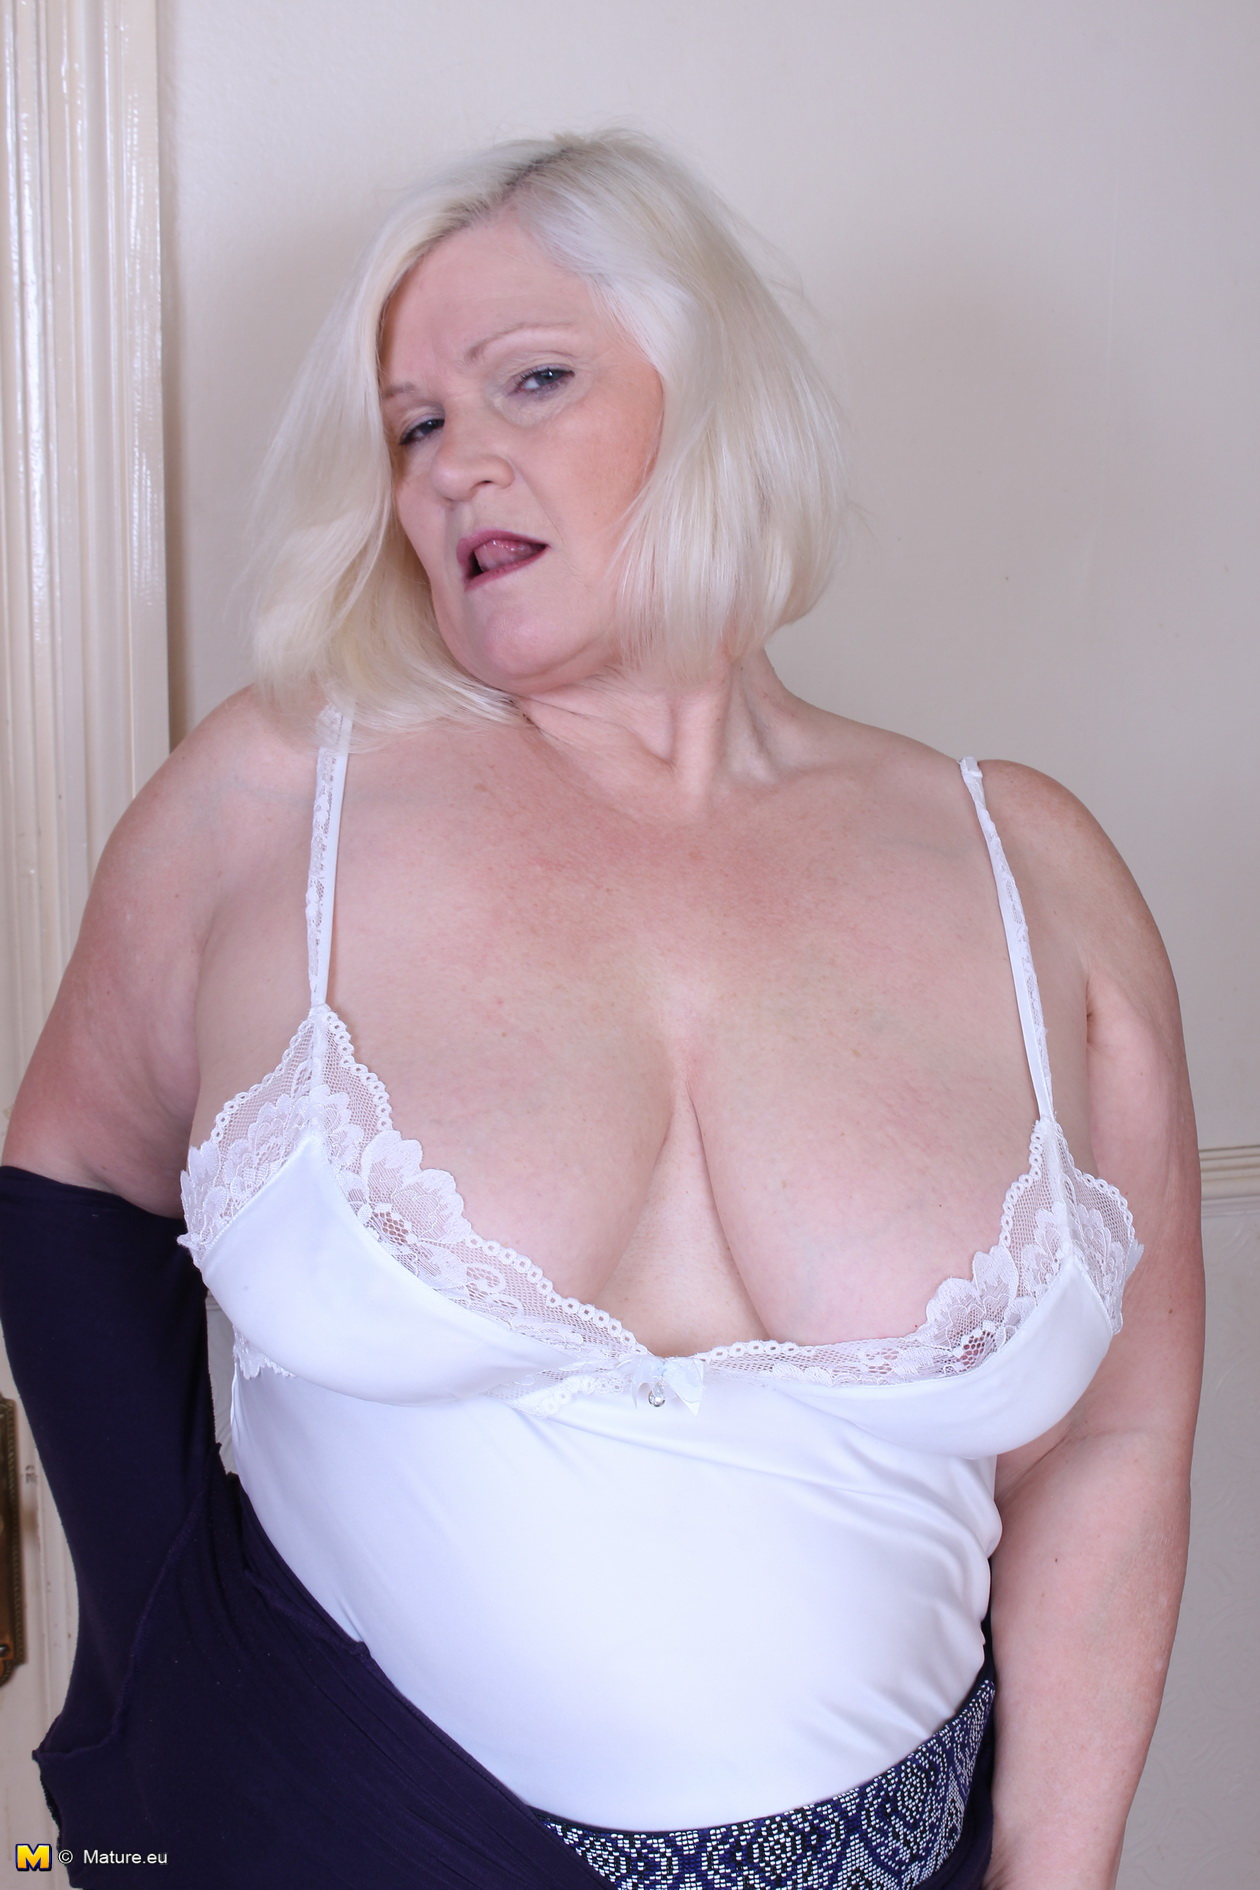 kinky granny is wearing no panties today – upskirt tease and downblouse flash